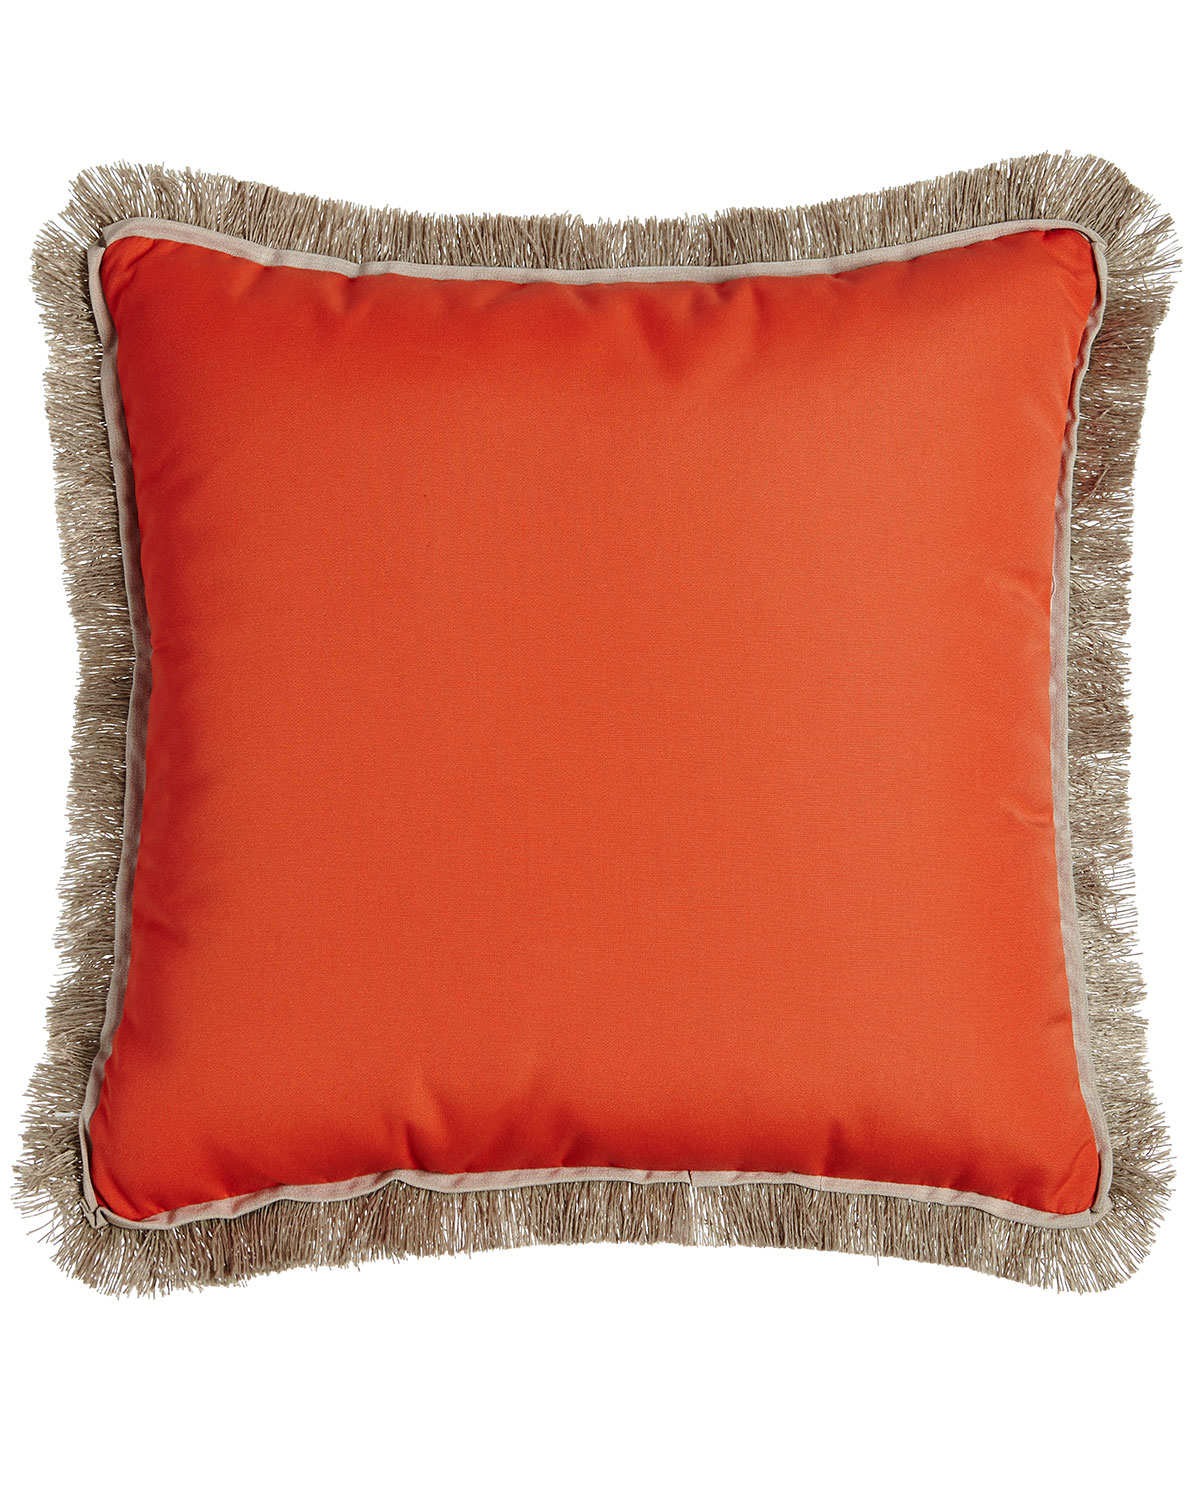 Lacefield Designs Outdoor Pillows Matching Items Neiman Marcus